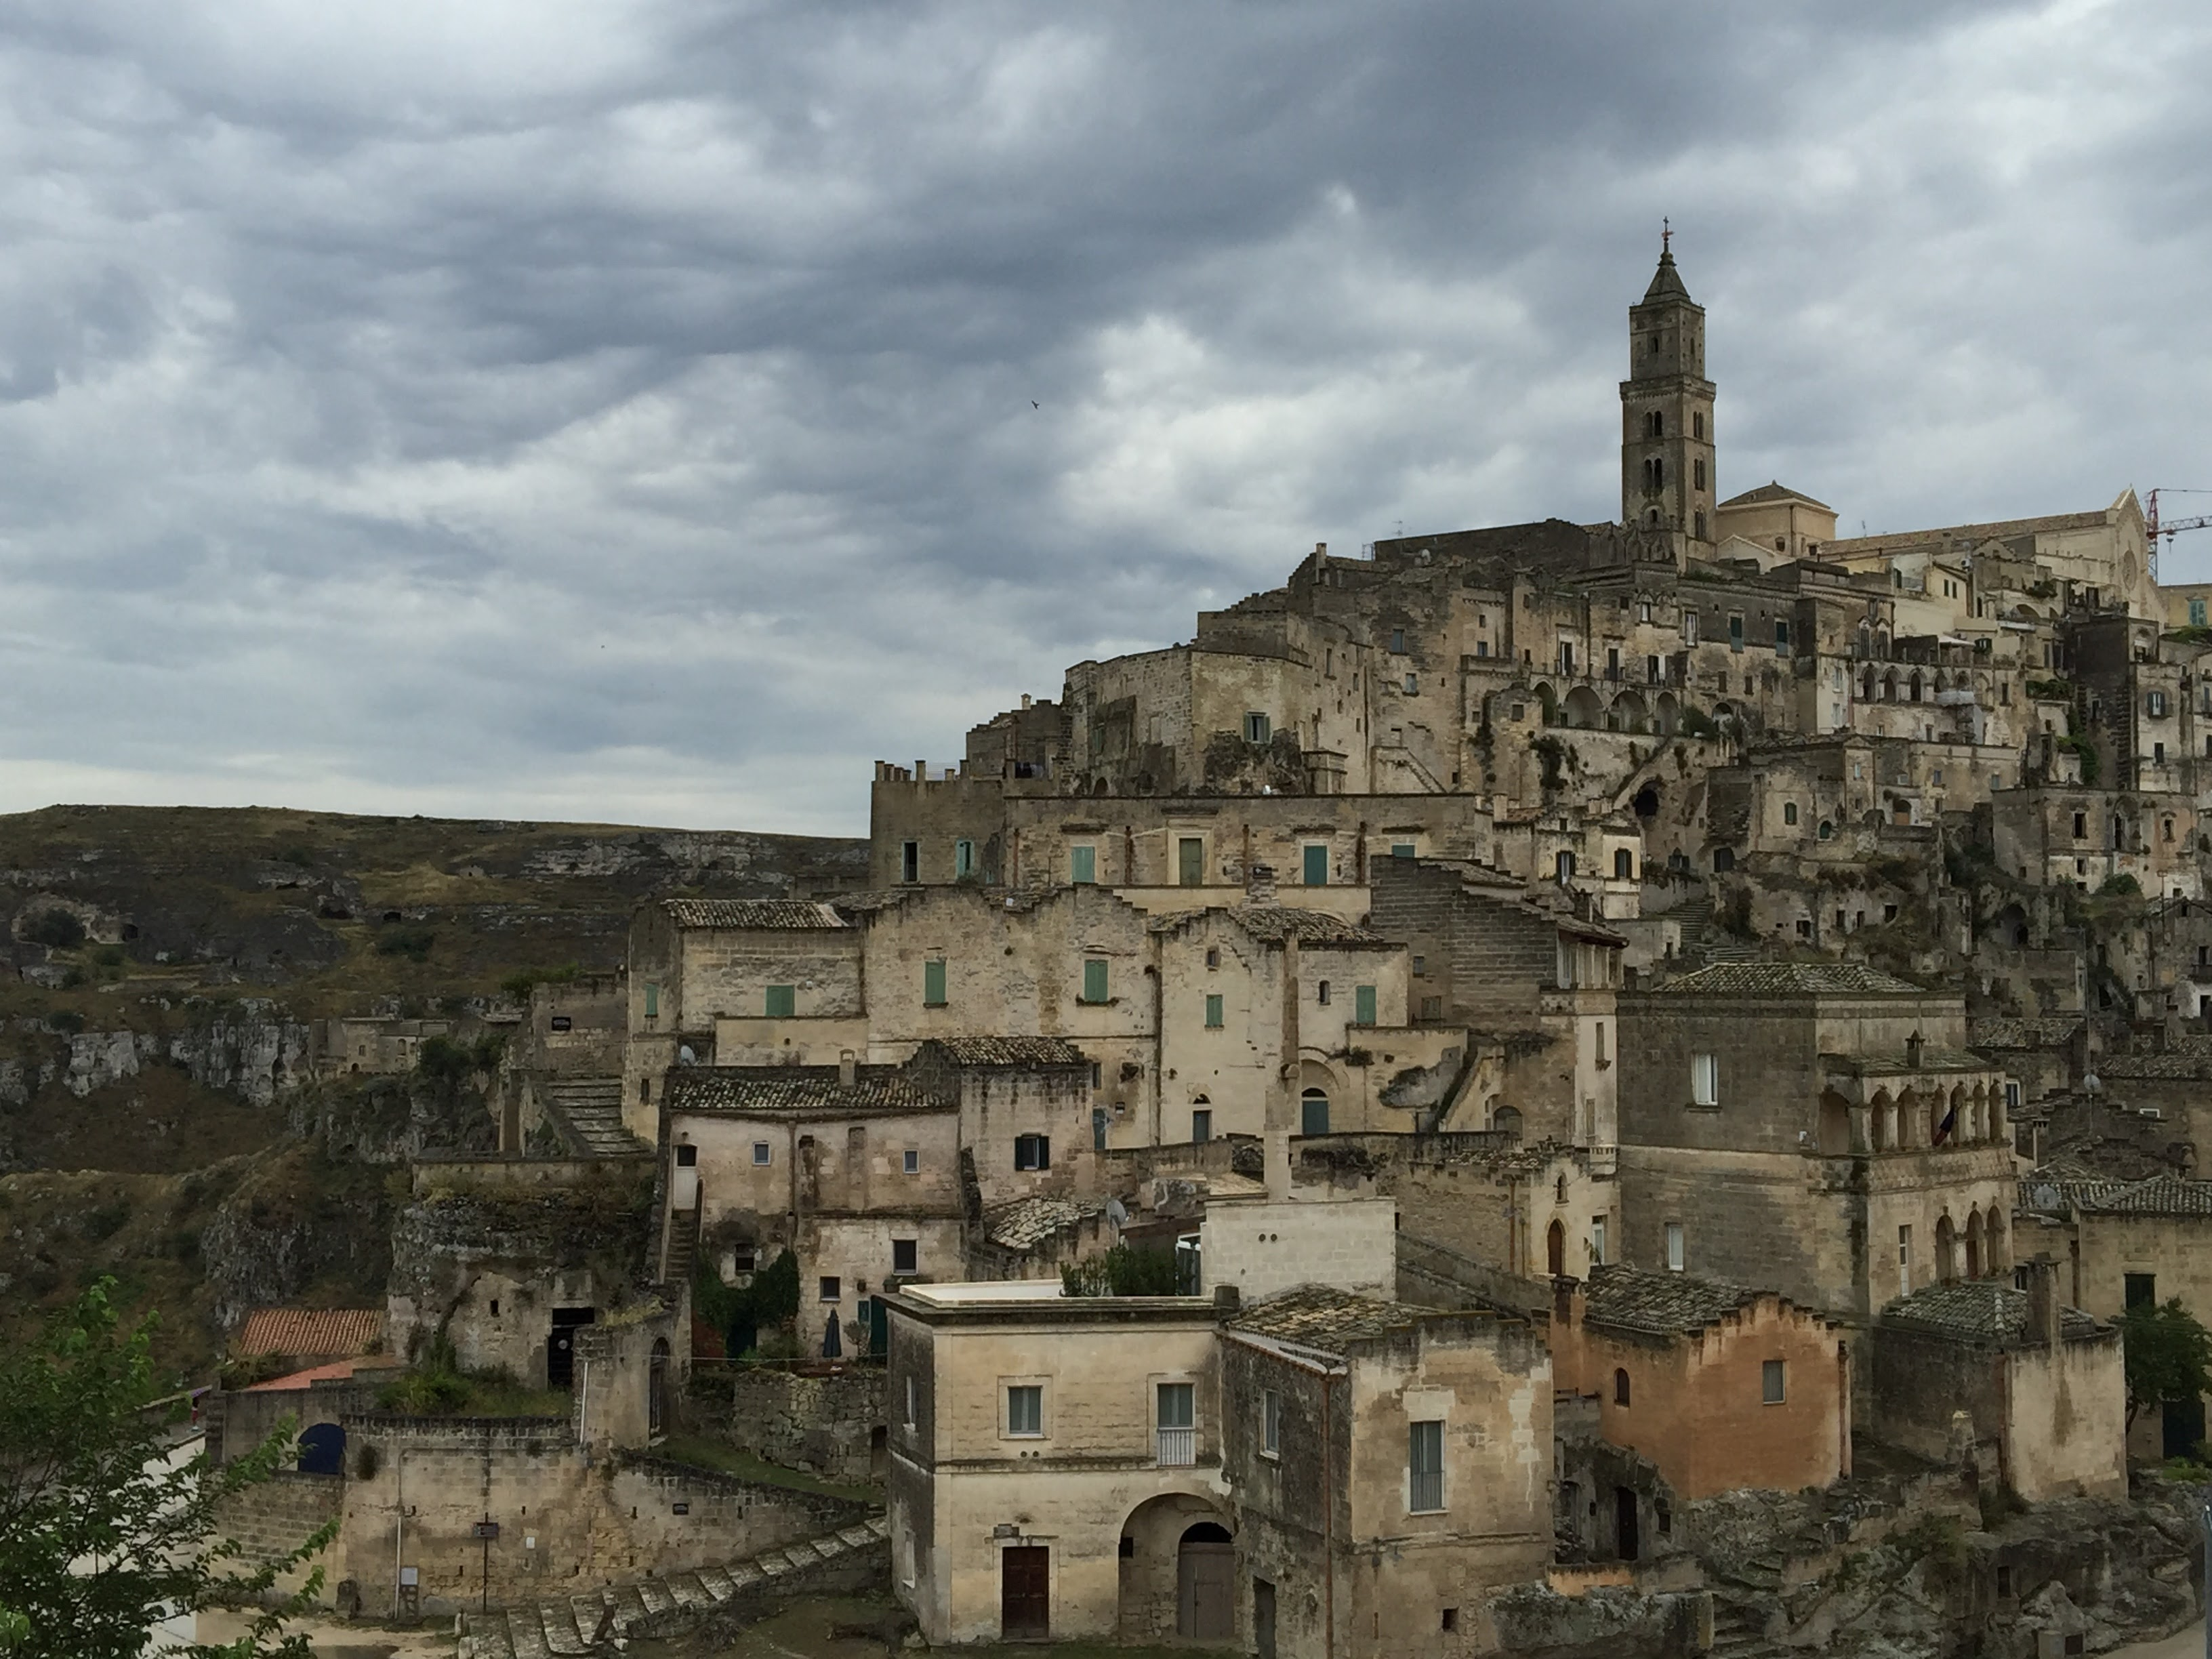 The dawn of a new age for Matera, Italy